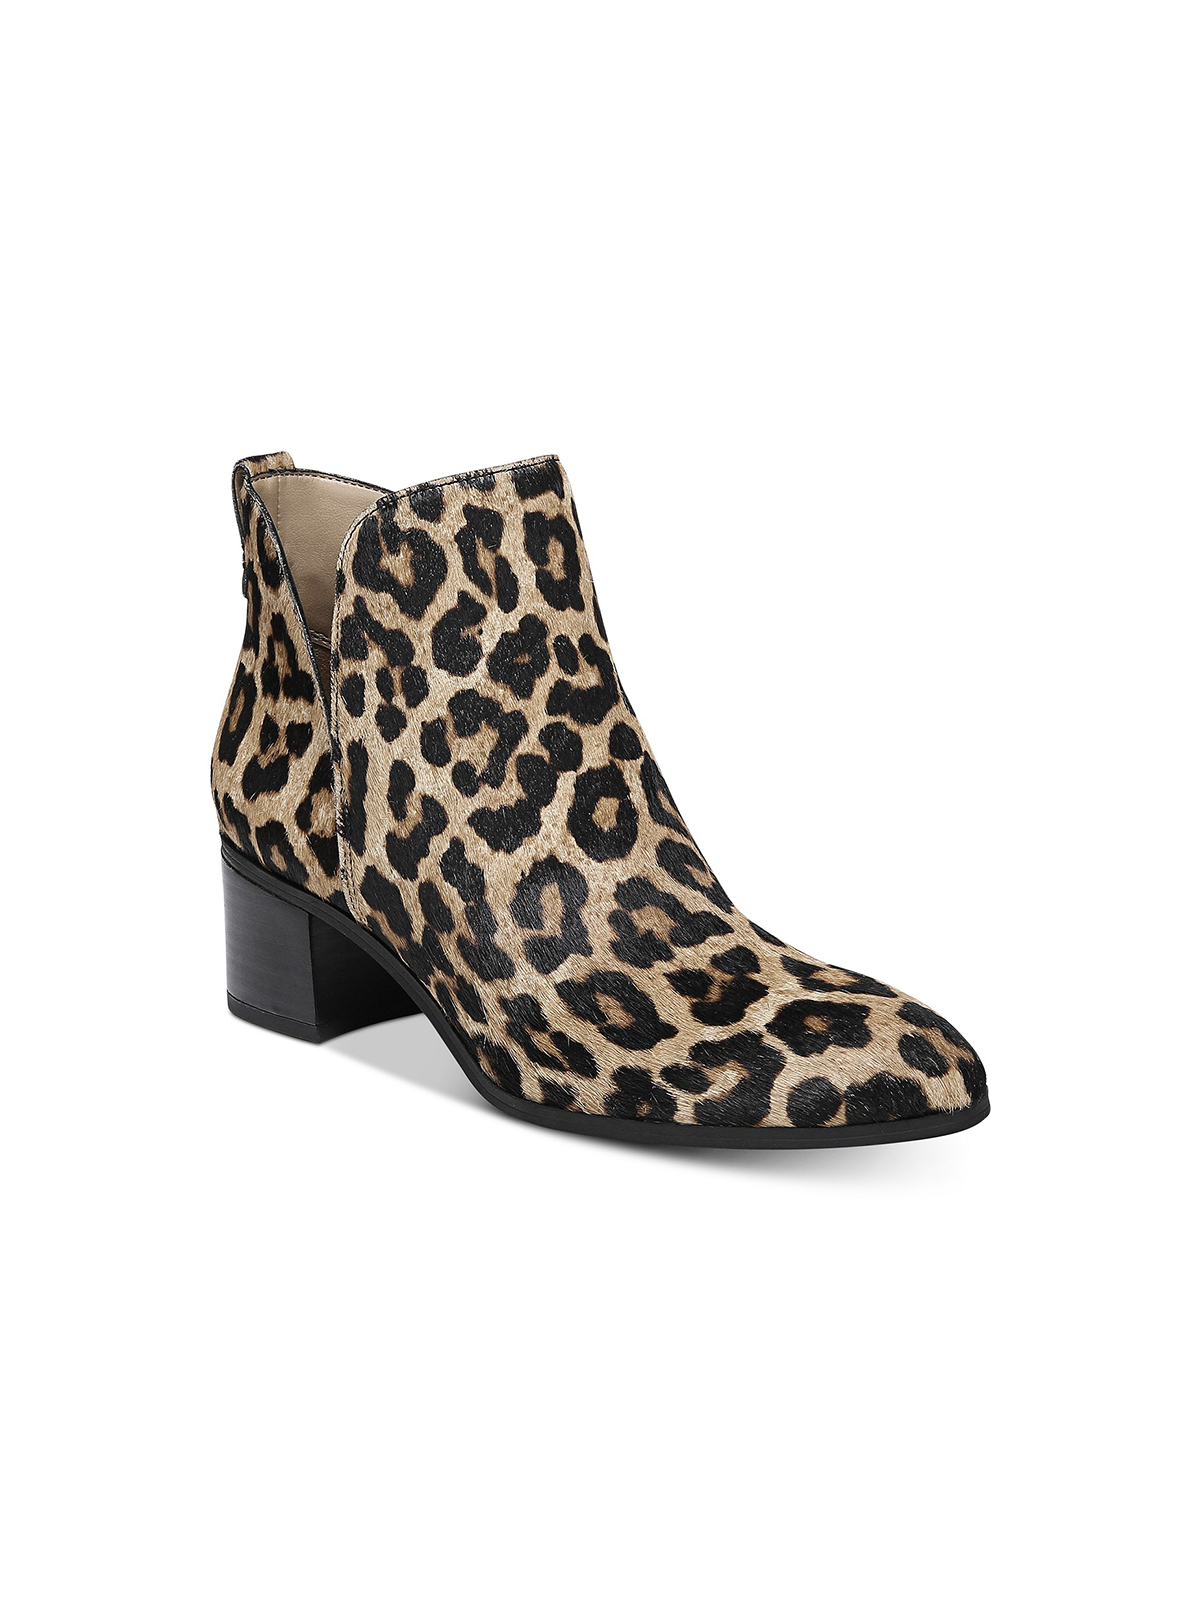 ddce4d9d1c1d 5 Fall Boot Trends Everyone Will Be Wearing—Our Top Picks Under  150 ...